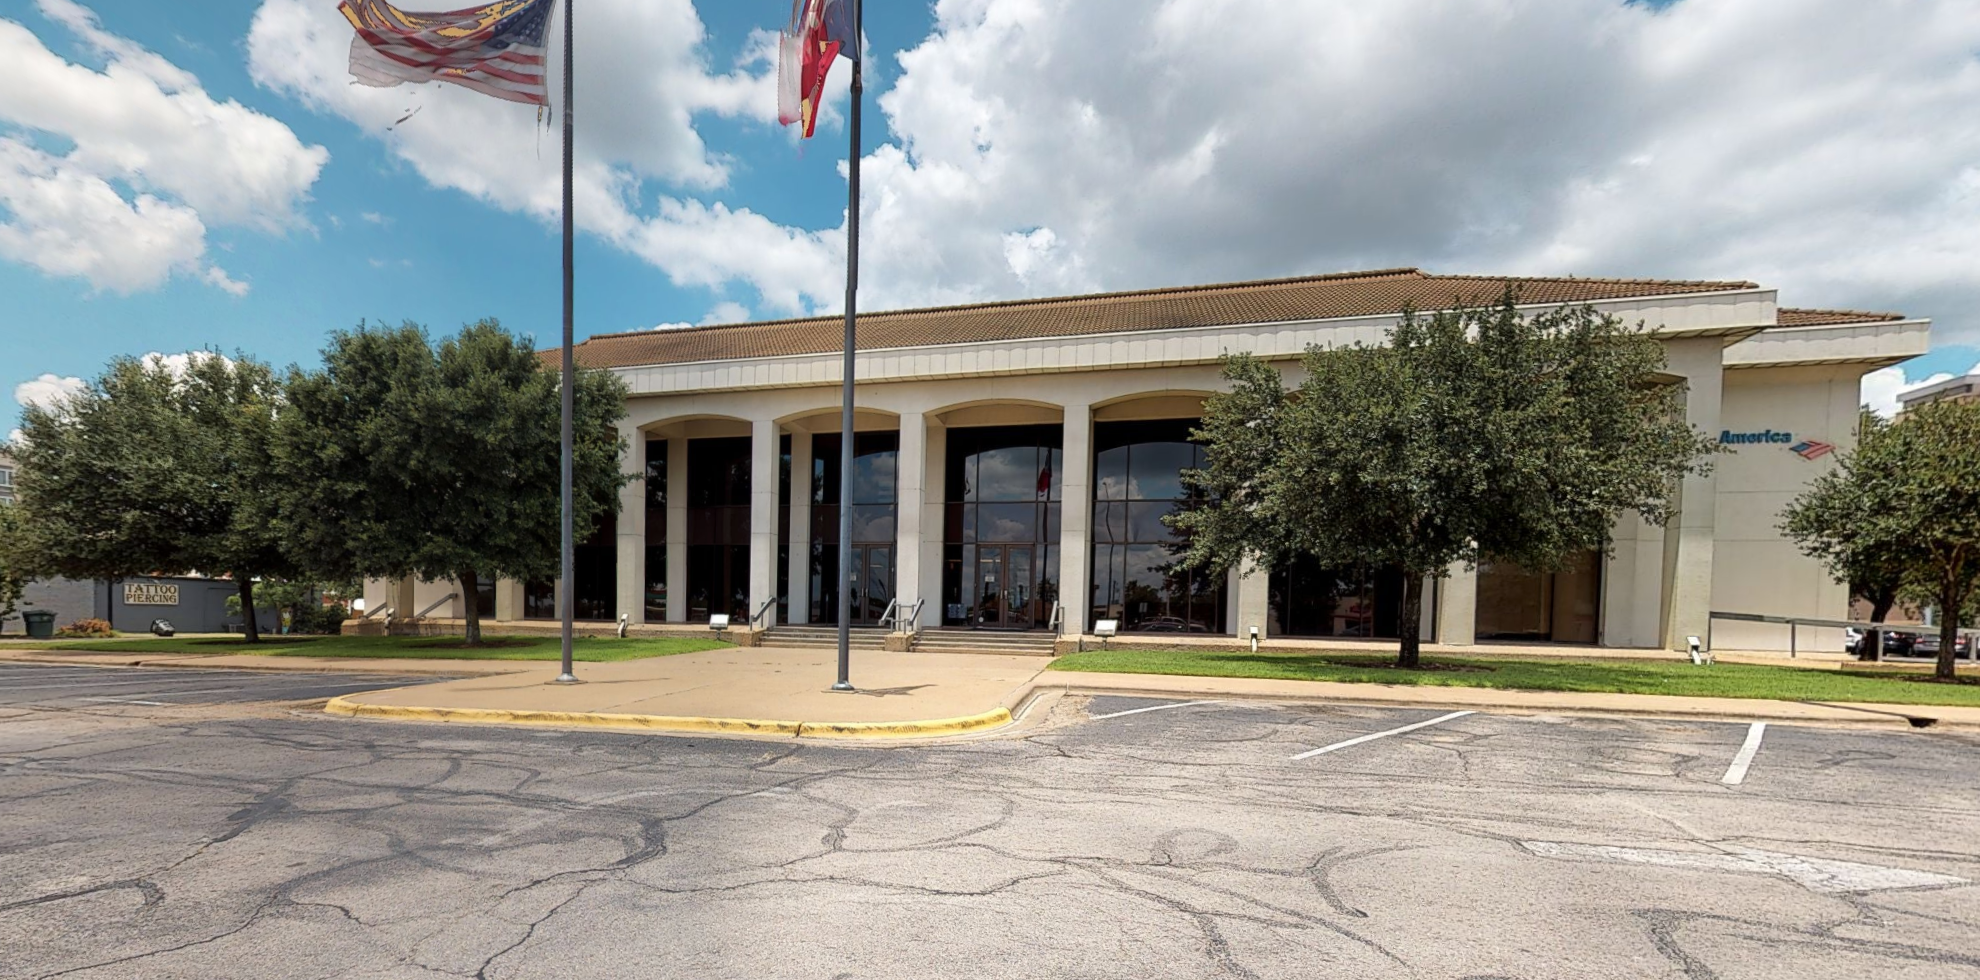 Bank of America financial center with drive-thru ATM   111 University Dr E, College Station, TX 77840